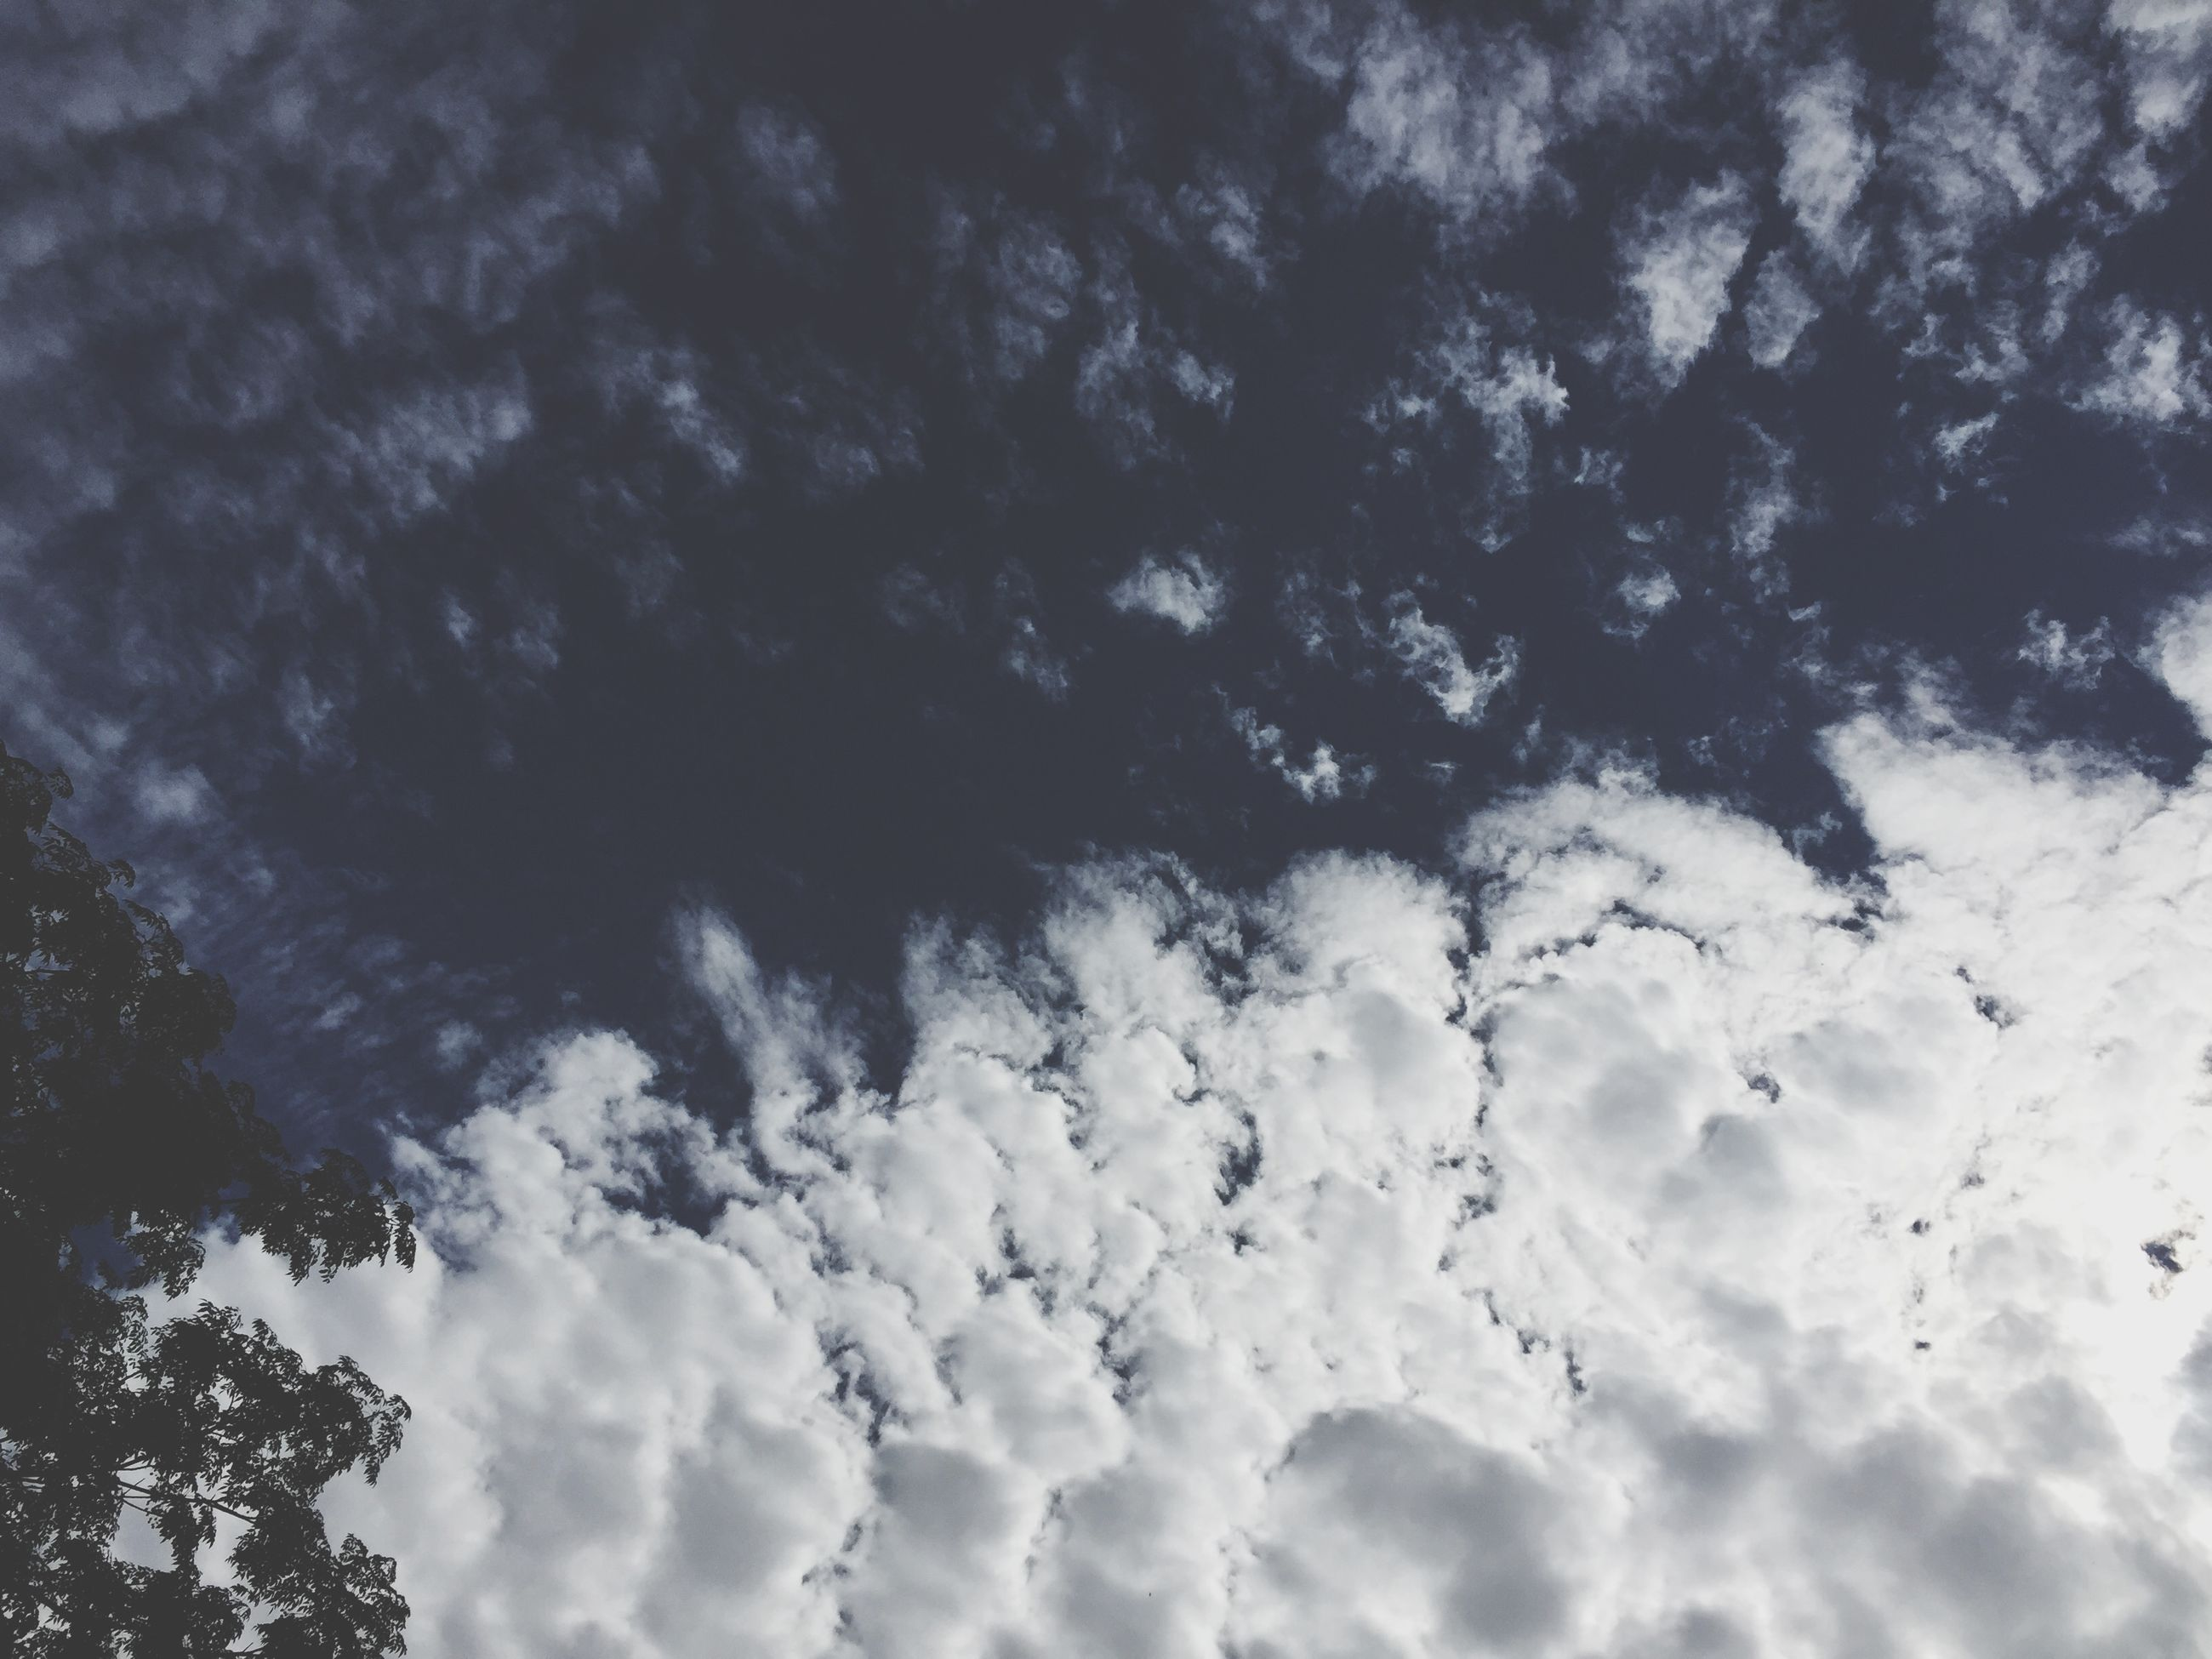 low angle view, sky, cloud - sky, beauty in nature, nature, backgrounds, cloudy, full frame, tranquility, sky only, scenics, cloud, white color, outdoors, tranquil scene, day, no people, cloudscape, tree, blue